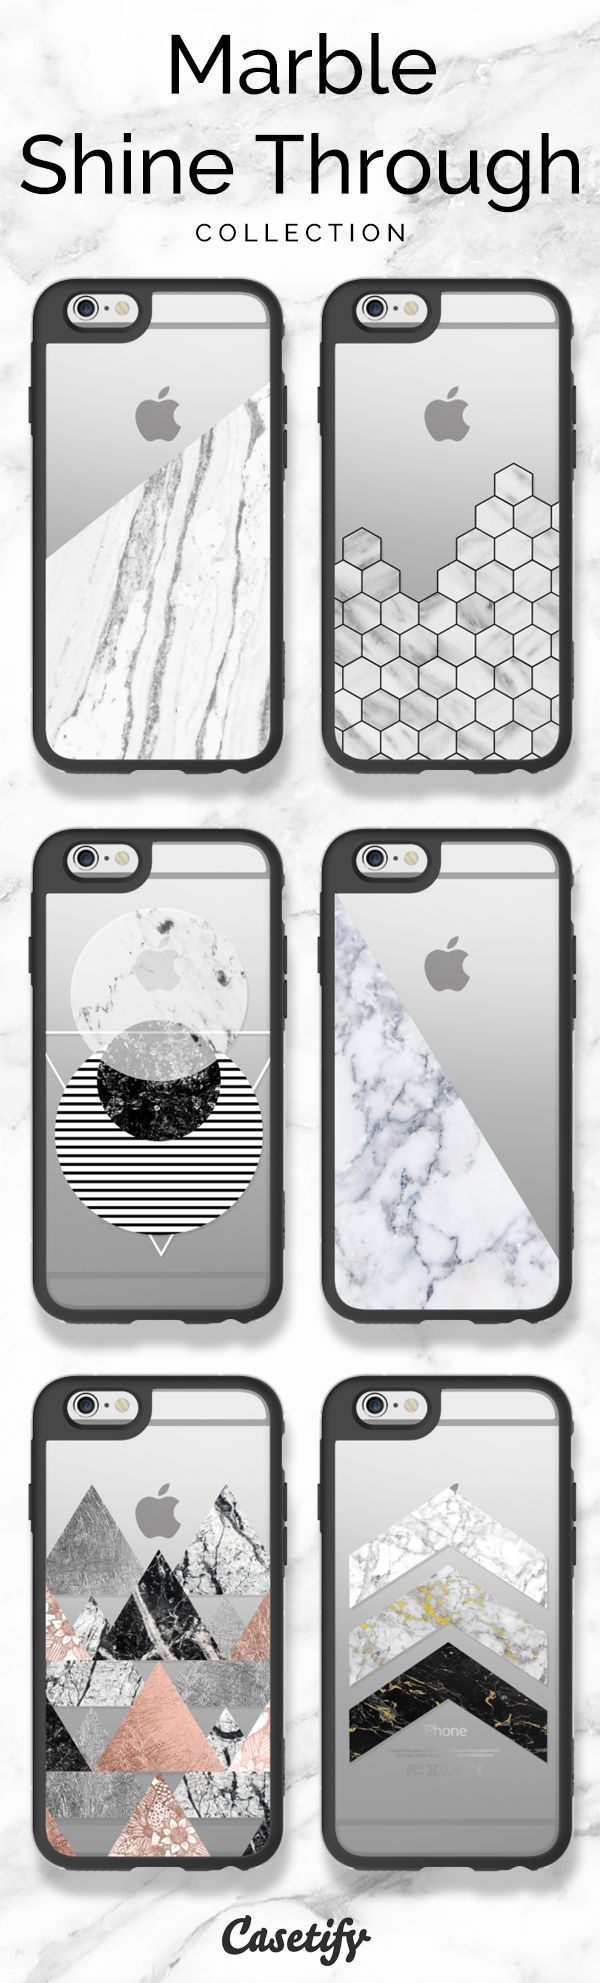 Top 6 Marble iPhone 6 protective phone cases | Click through to shop these iPhone phone case ideas >>> https://www.casetify.com/artworks/0J2Fqqqc2W | @casetify